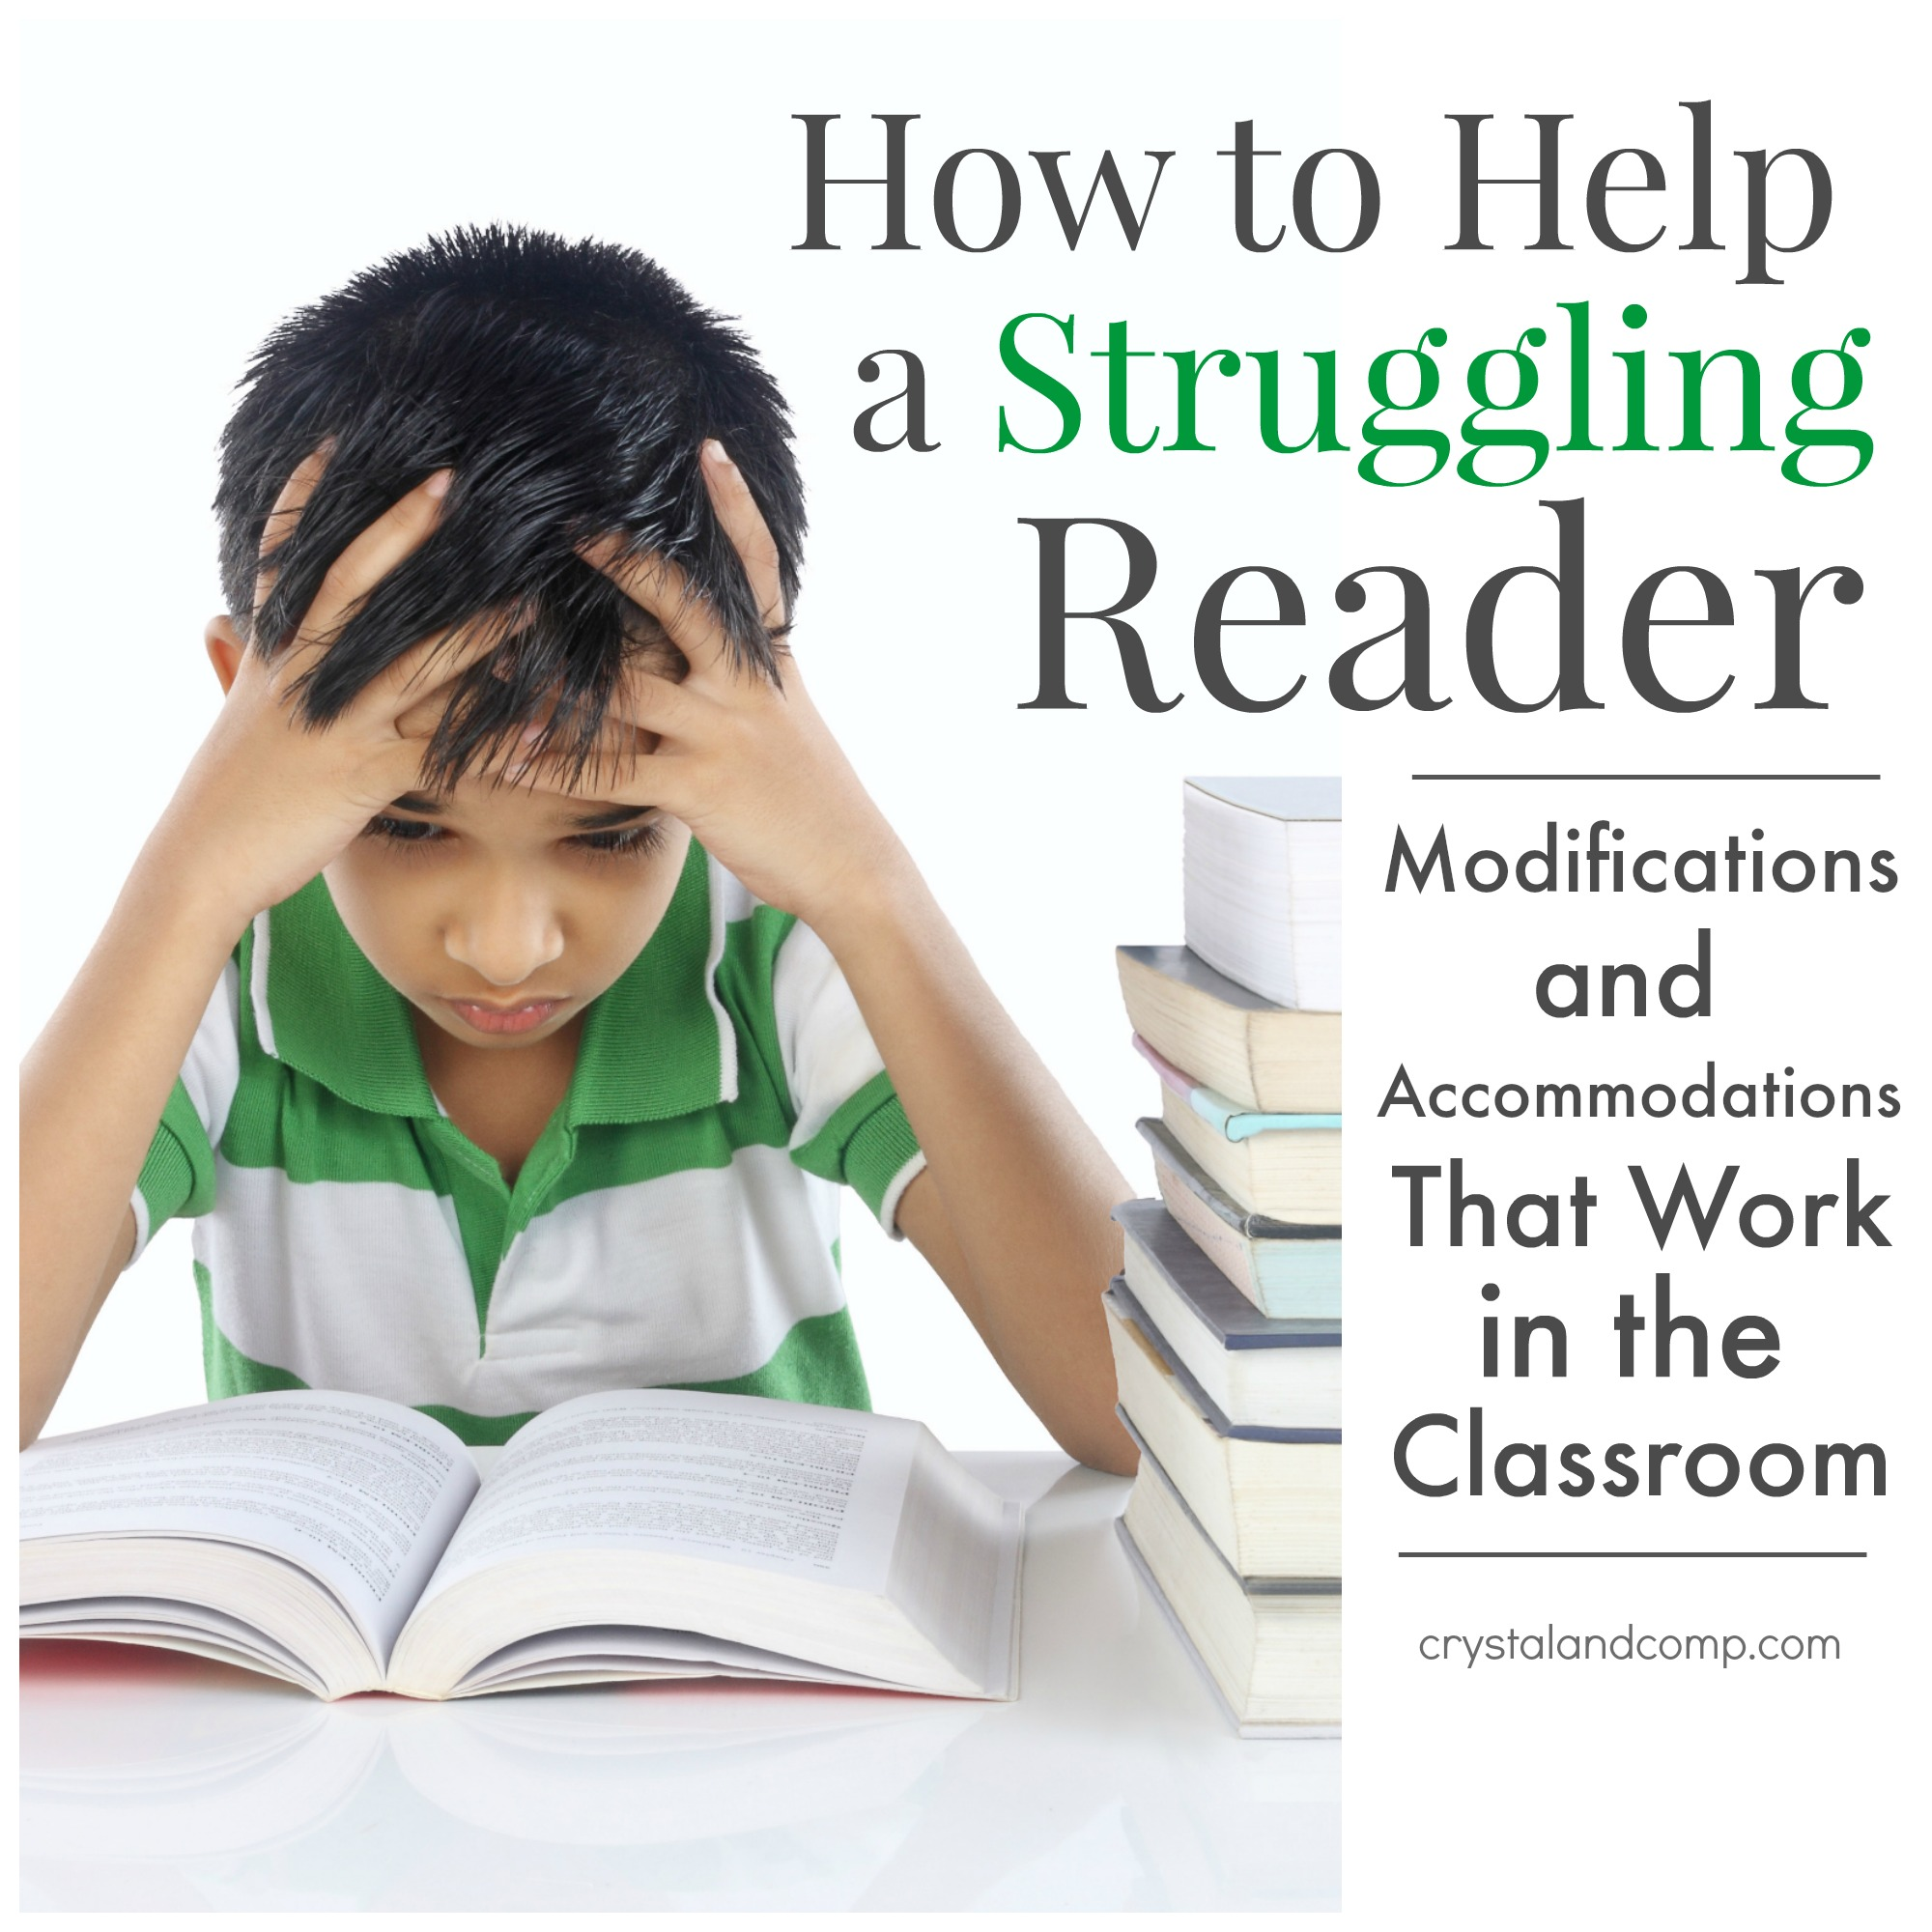 Accommodating Students With Dyslexia >> 12 Accommodations And Modifications For Dyslexic Children In Public